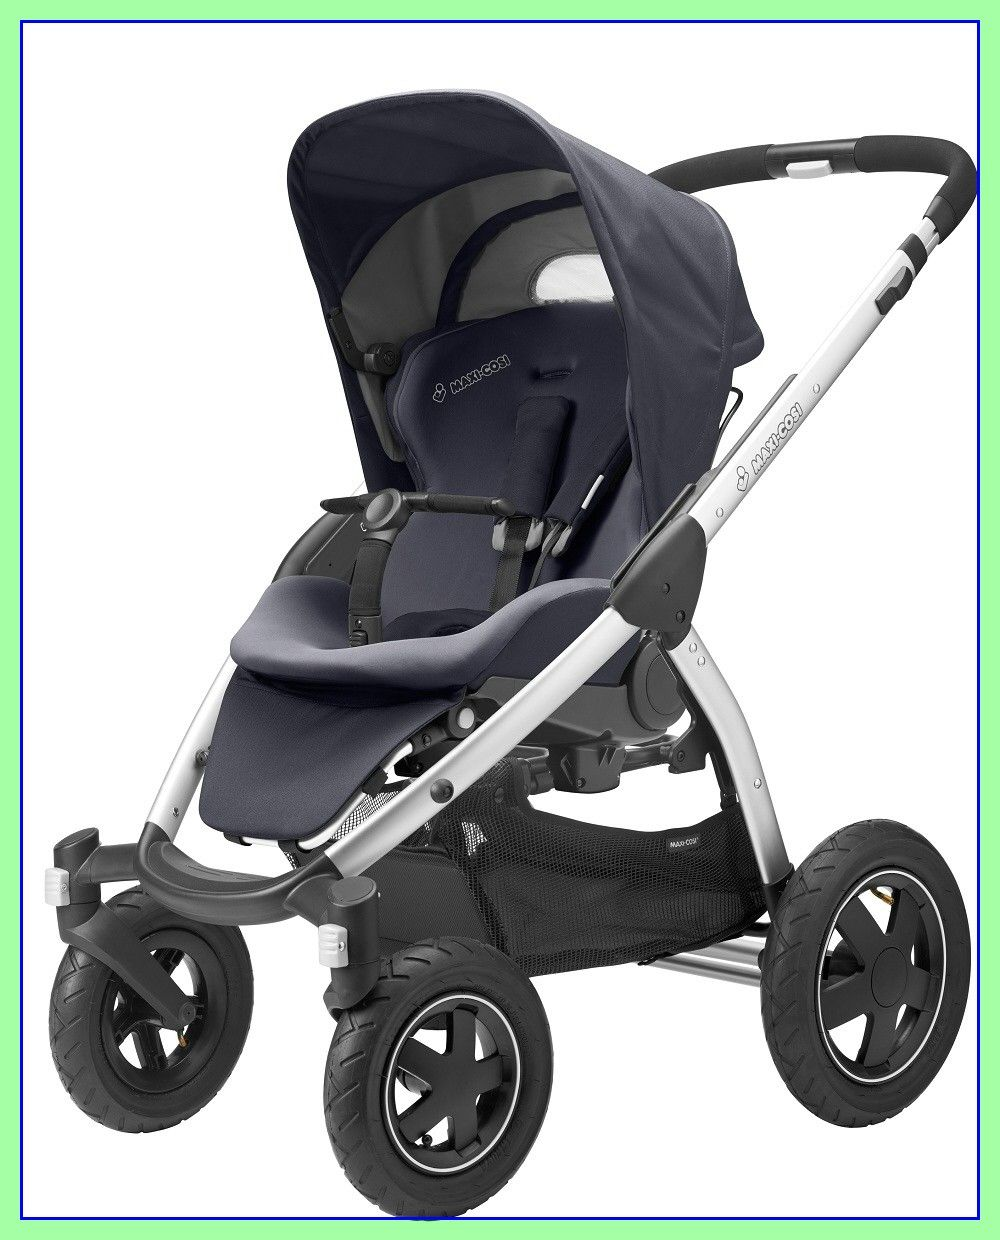 105 reference of car seat and stroller maxi cosi in 2020